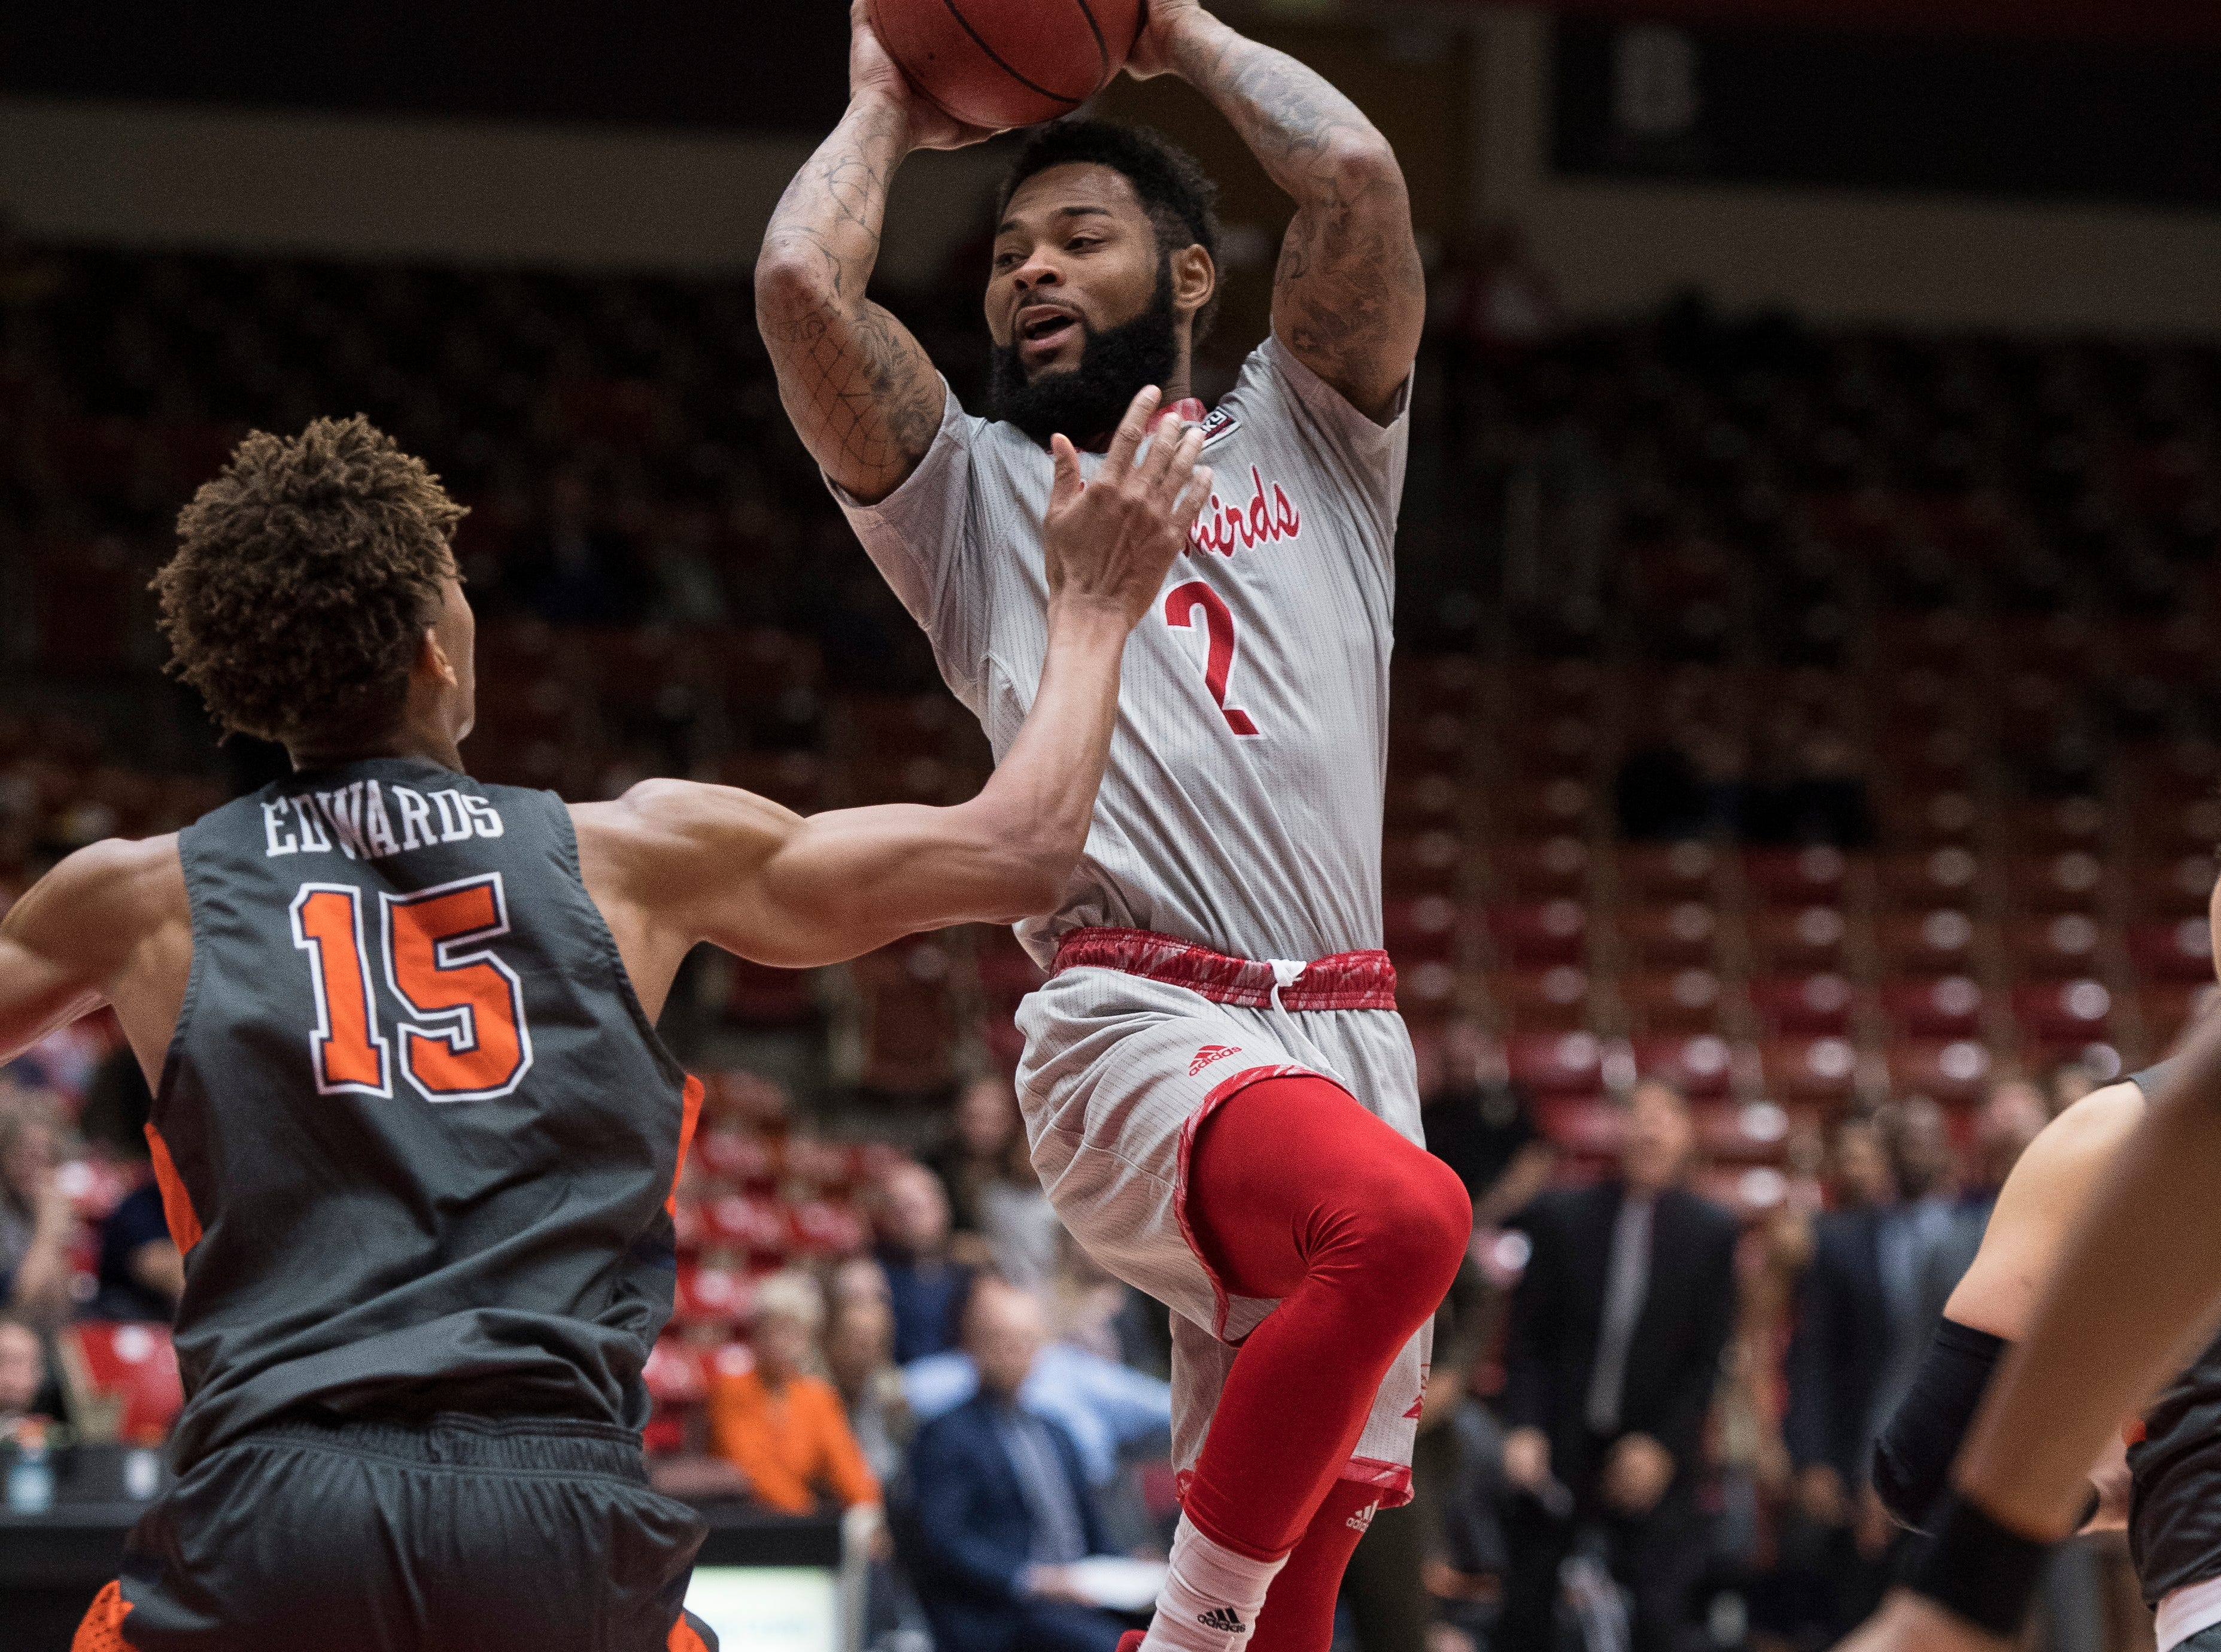 Southern Utah University senior Brandon Better (2) shoots the ball against Pepperdine University in the America First Event Center Saturday, December 15, 2018. SUU won in overtime, 78-69.